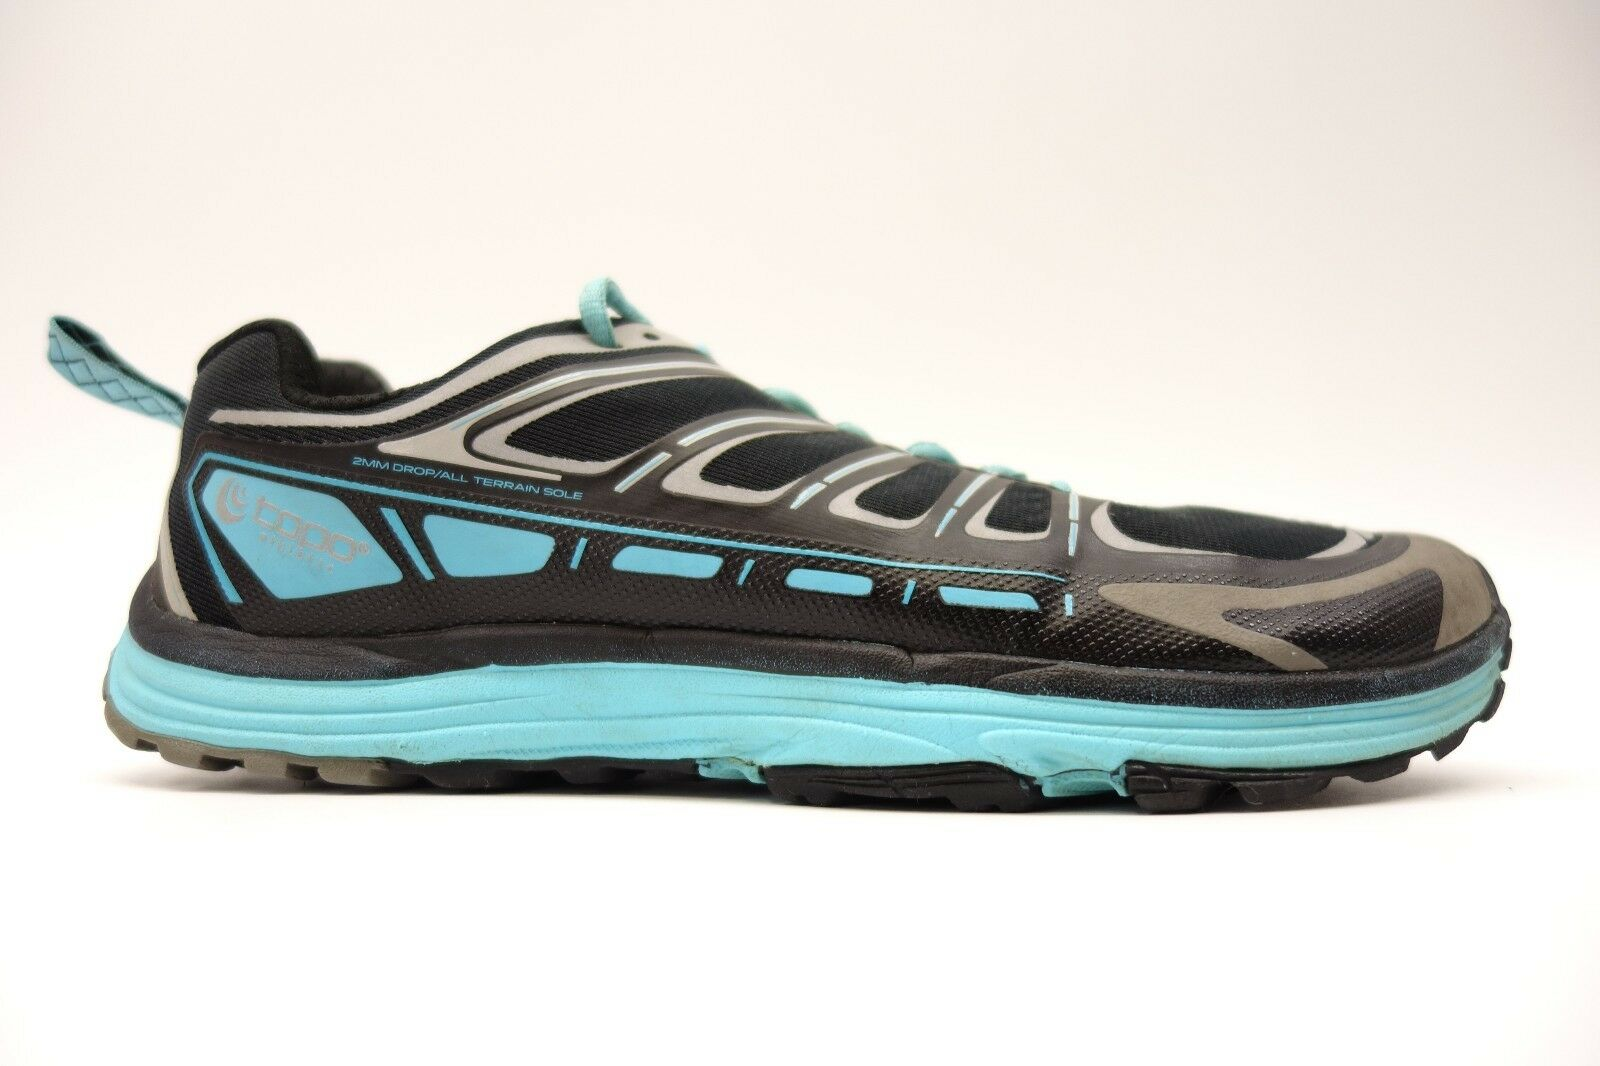 Damenschuhe Topo Runventure 2mm Drop Running Athletic Turquoise Trail Schuhes 9.5